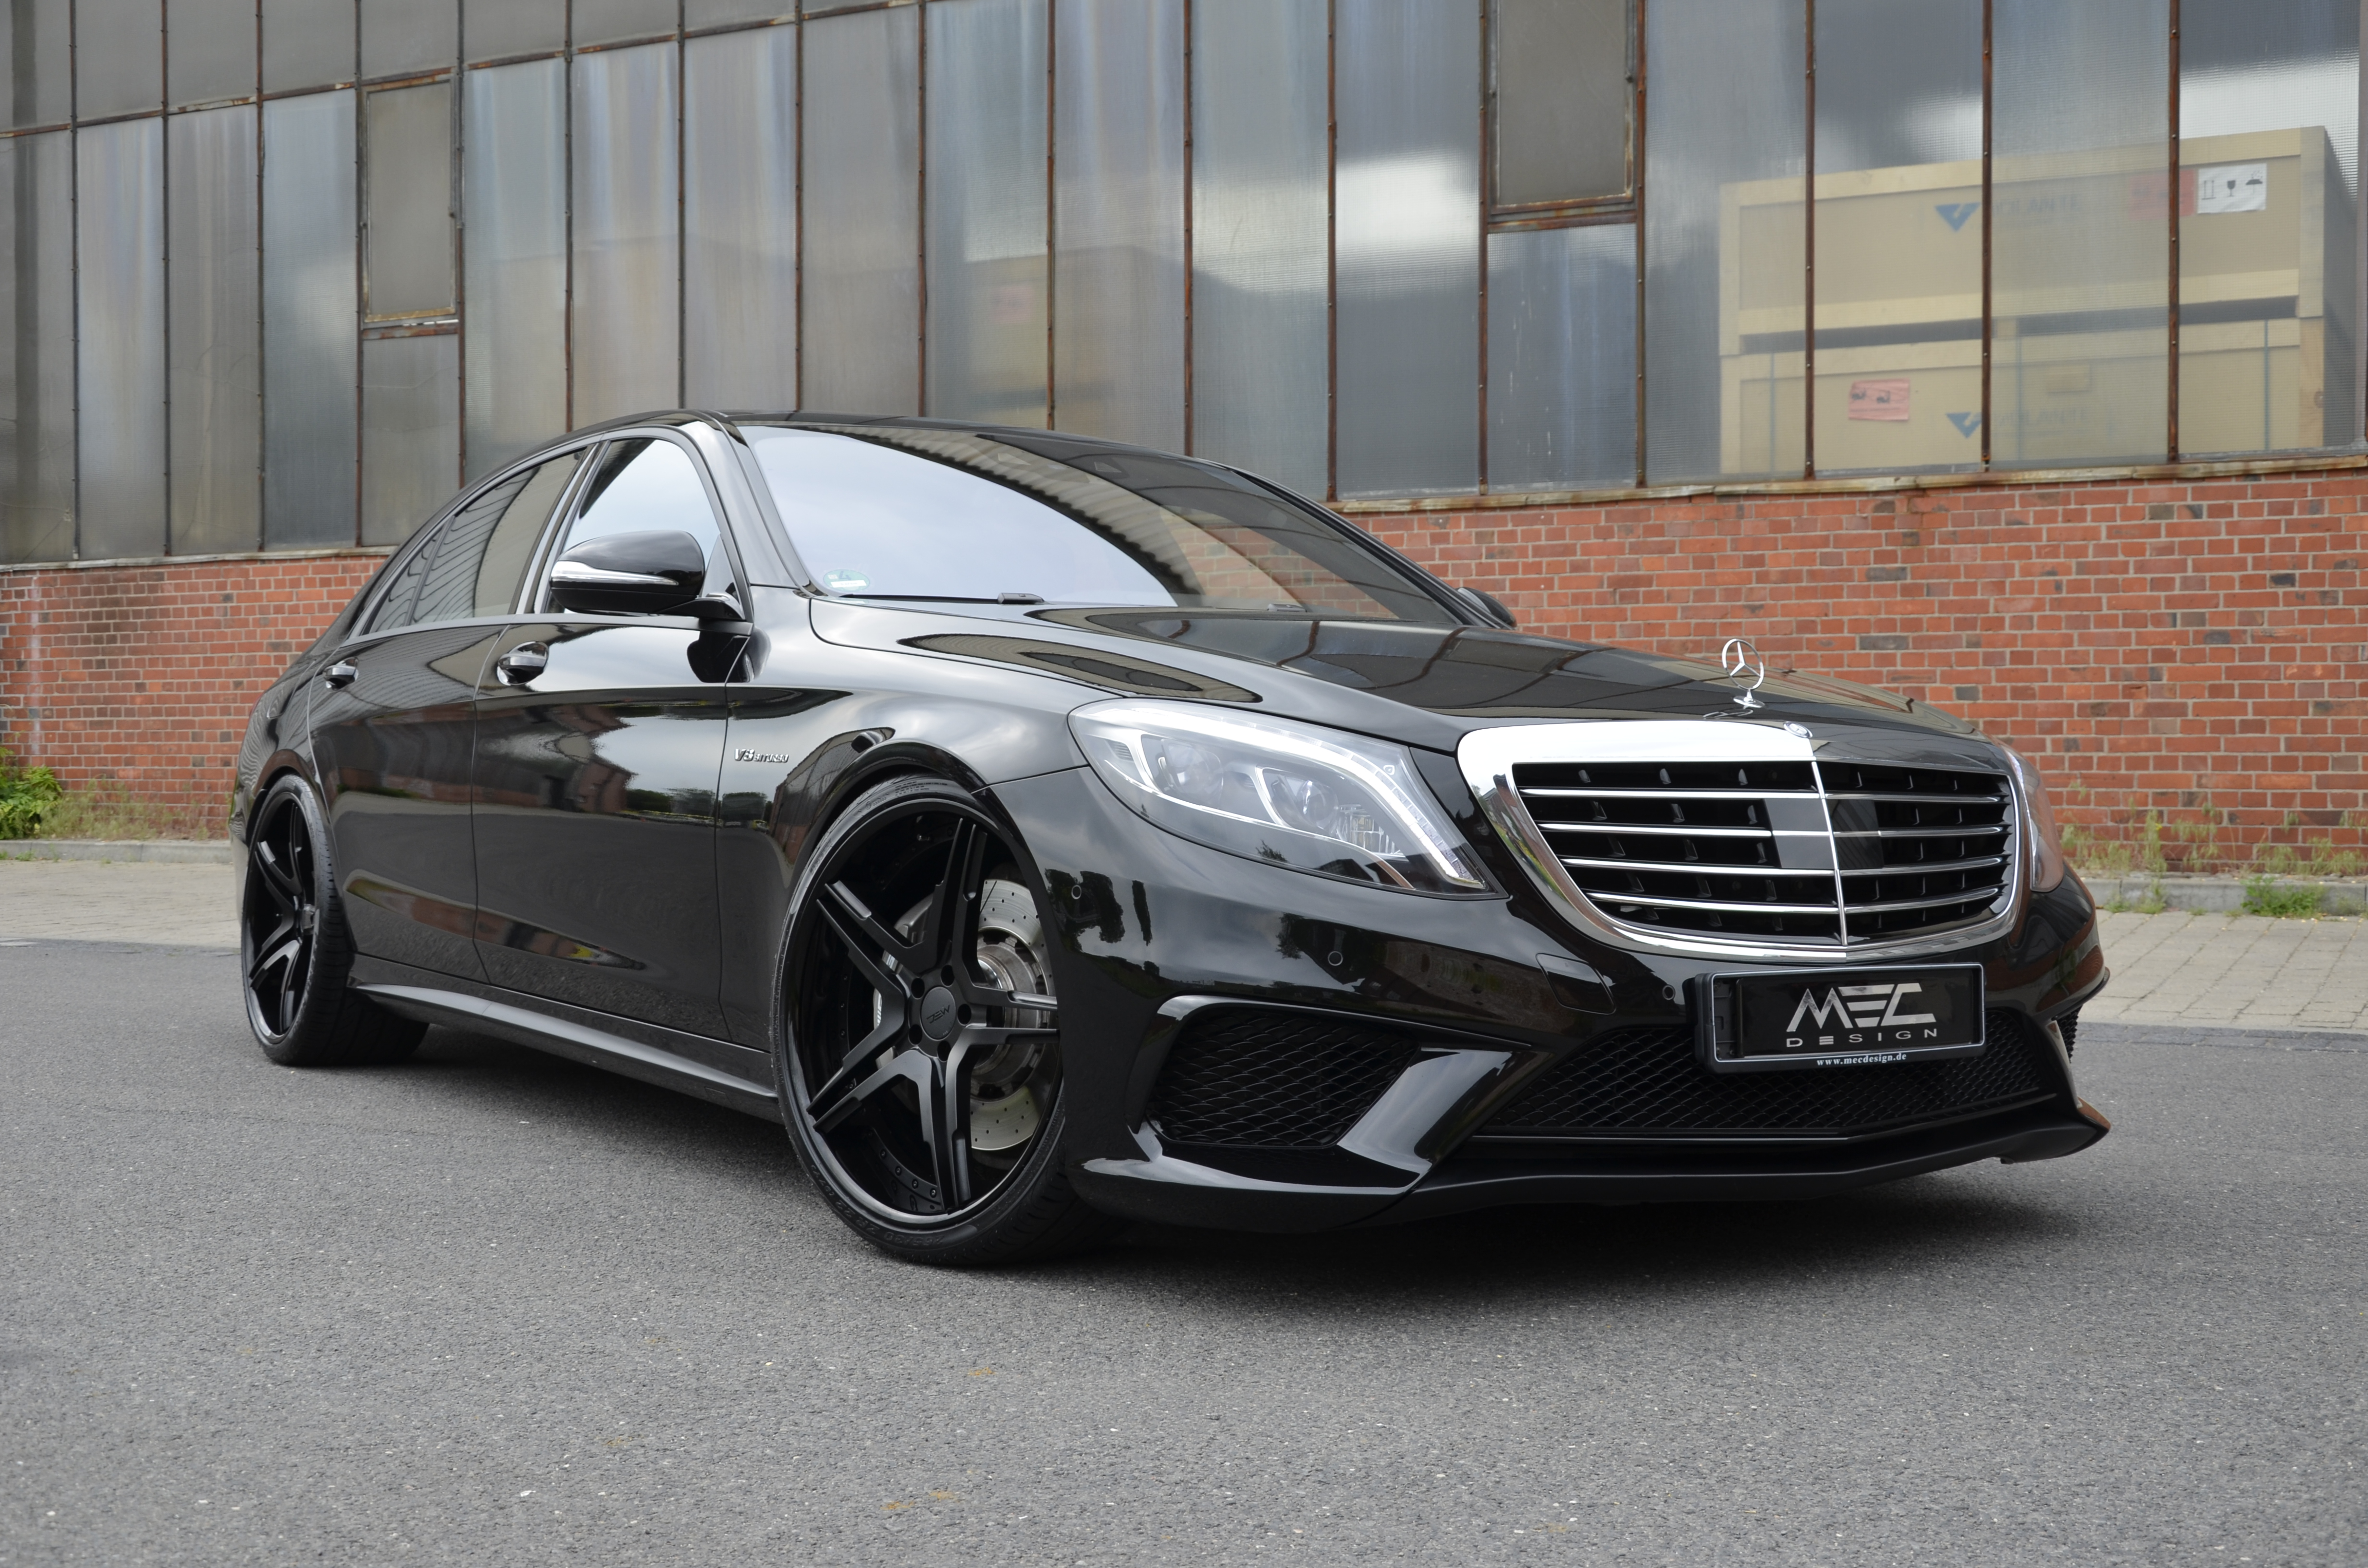 Mercedes S-Class Hybrid (W222) exterior specifications